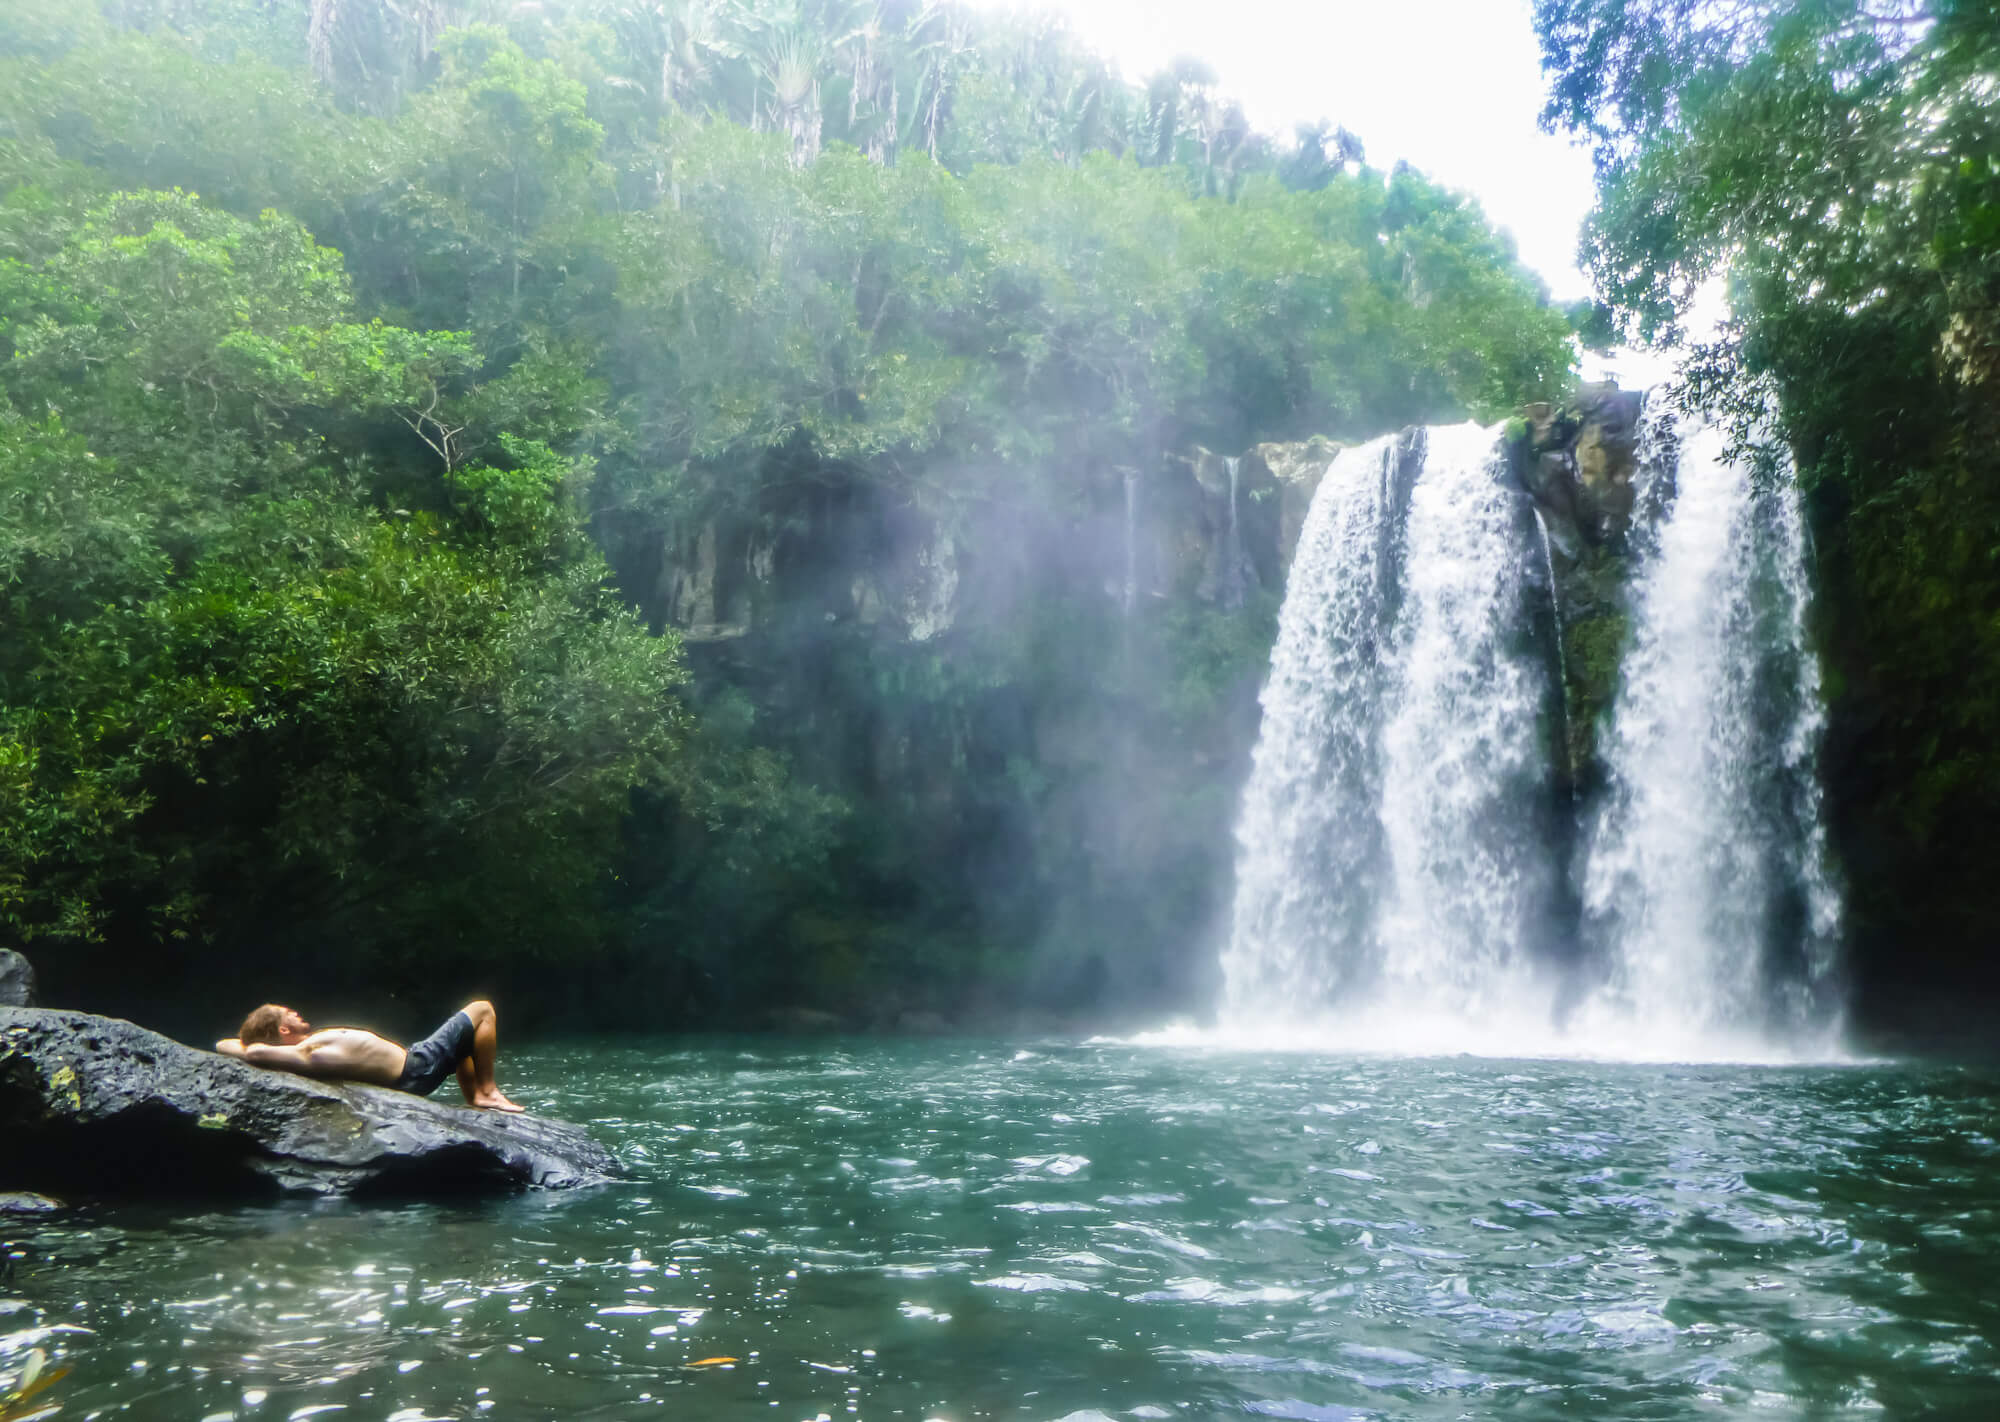 Man takes a break from his diving trip in Mauritius at a waterfall